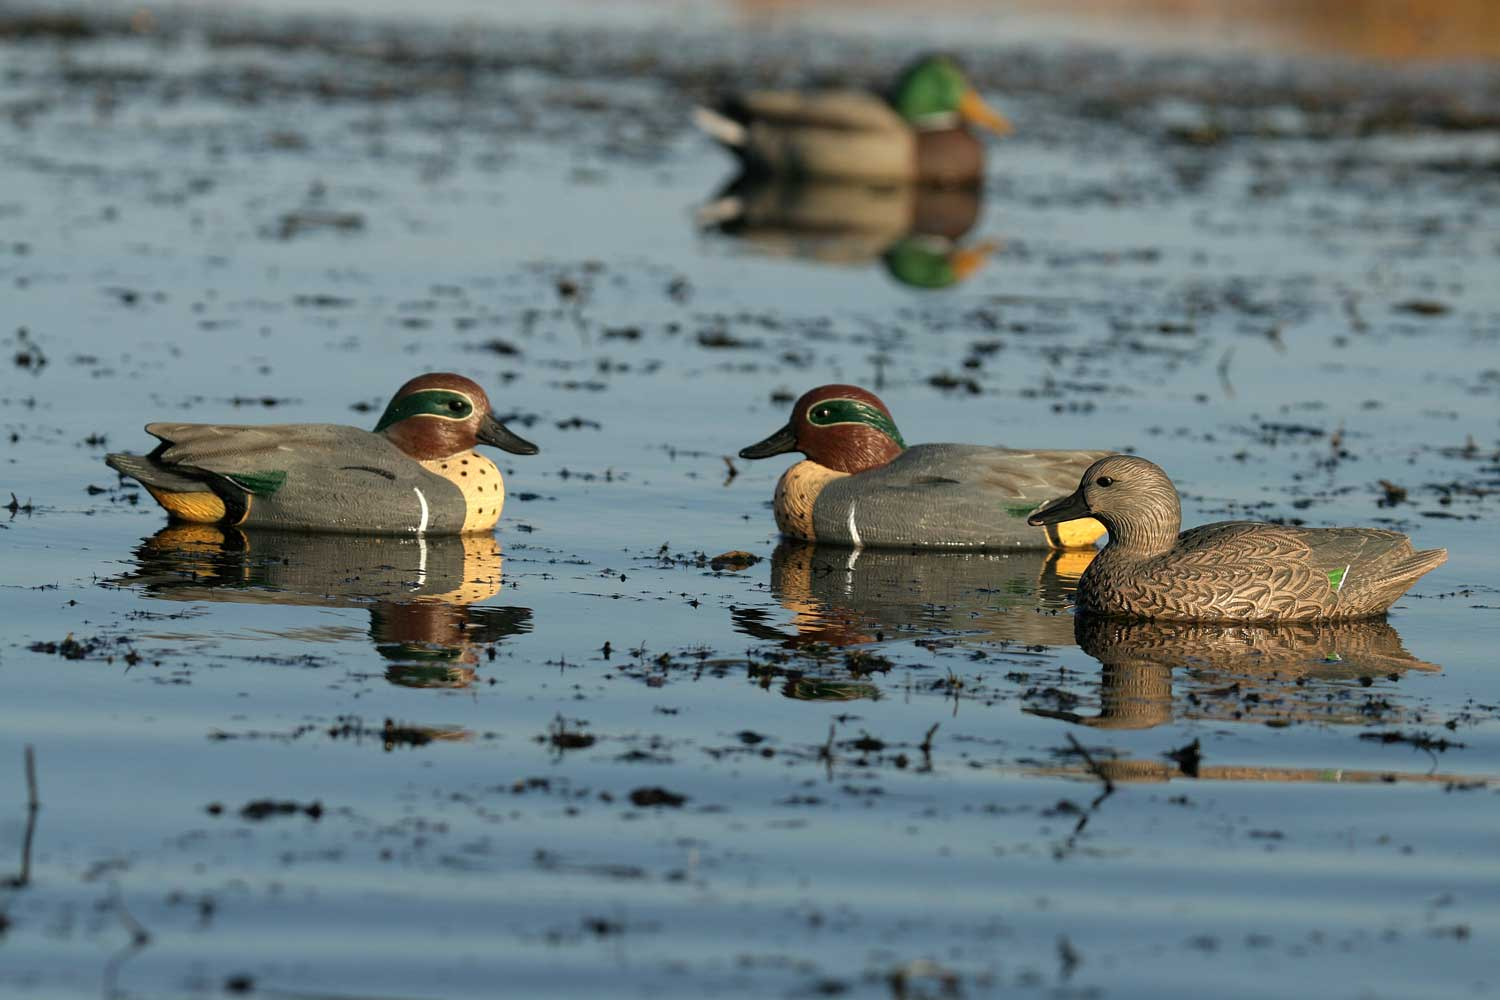 Avery GHG Life-Sized Floating Green-Winged Teal Decoys, 6 Pack_2.jpg